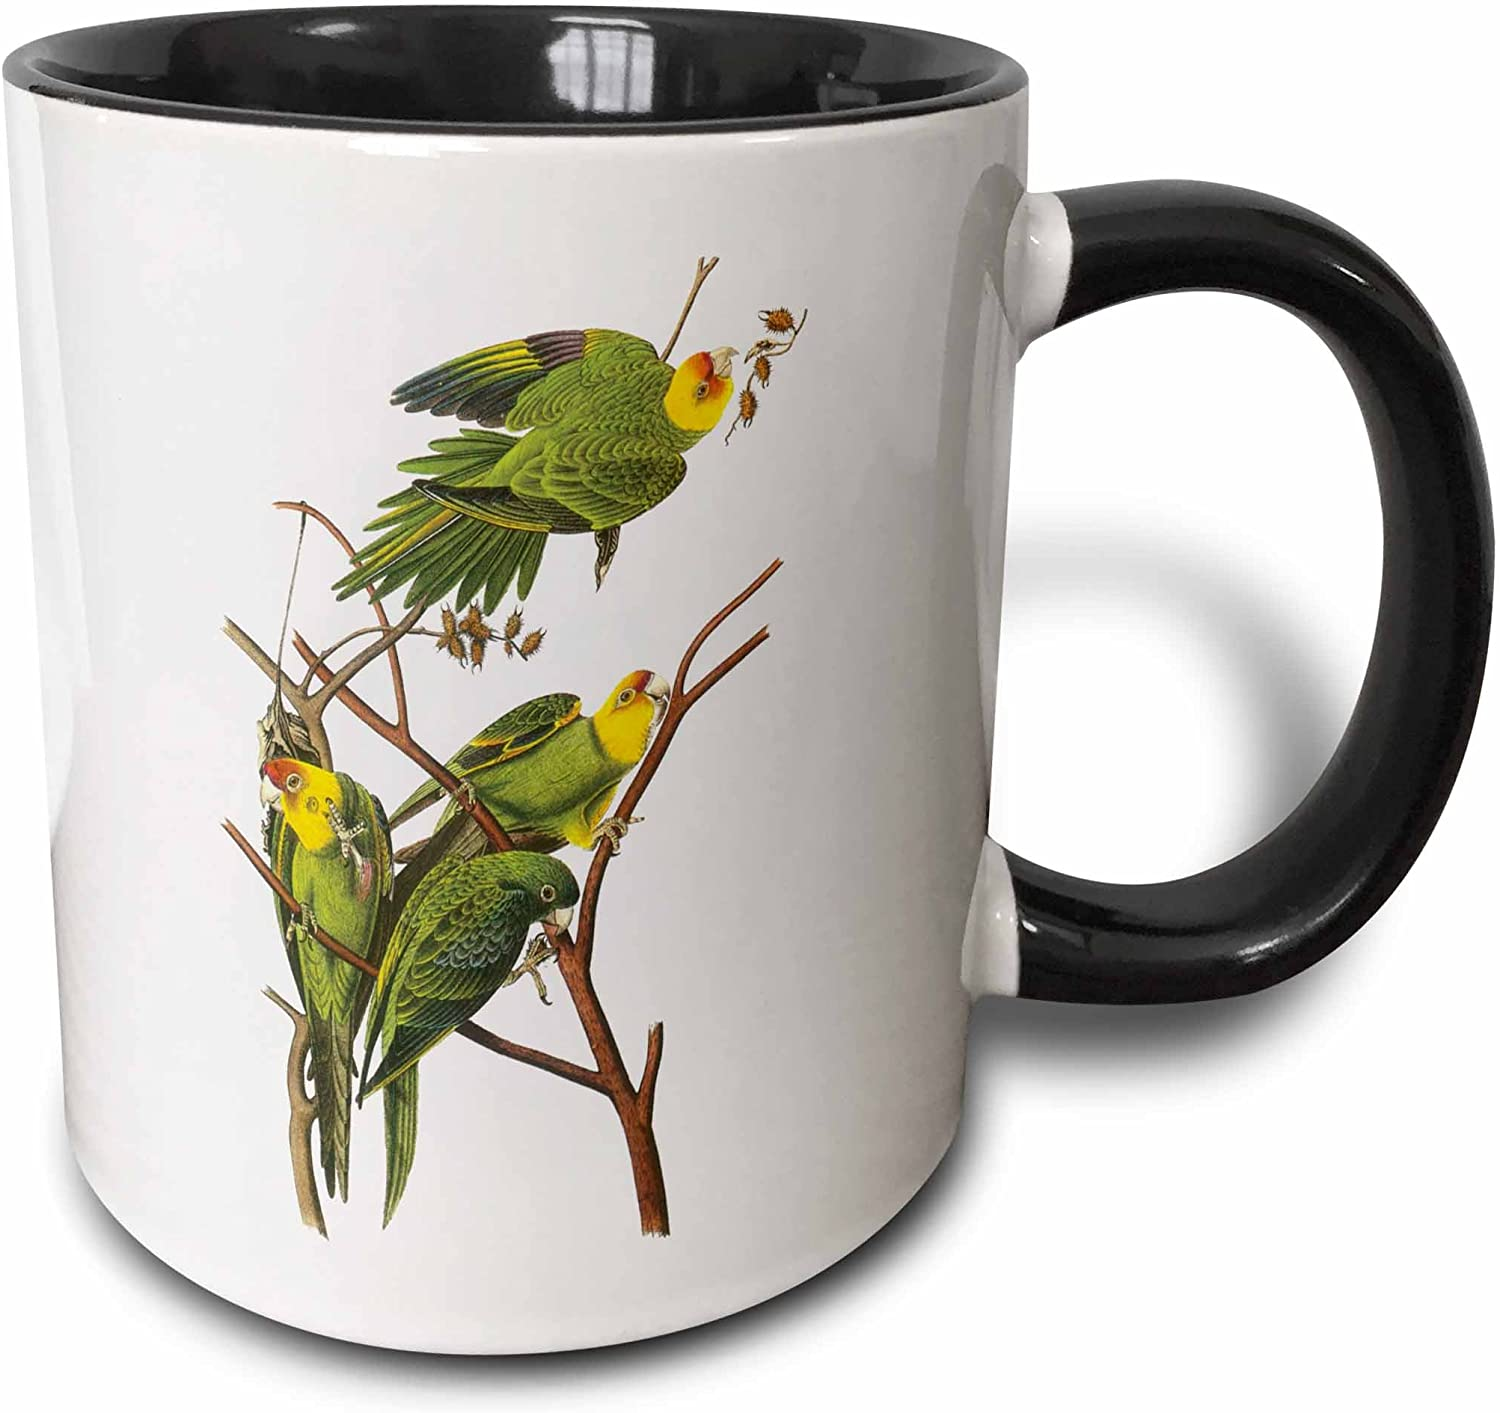 Amazon Com 3drose Branch Full Of Parrots Mug 11 Oz Black Kitchen Dining